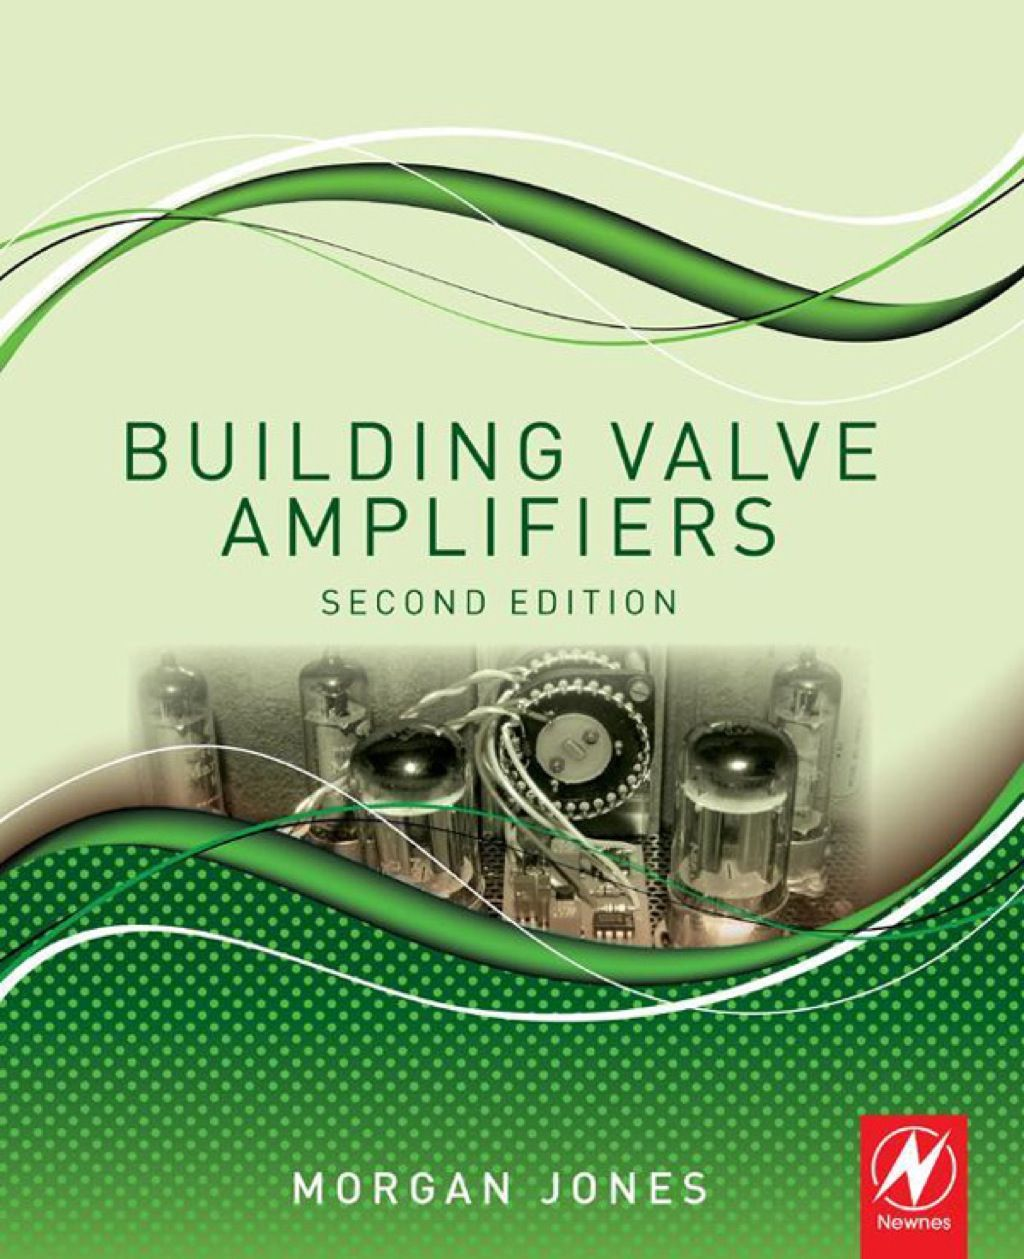 Building Valve Amplifiers (2nd Ed.)